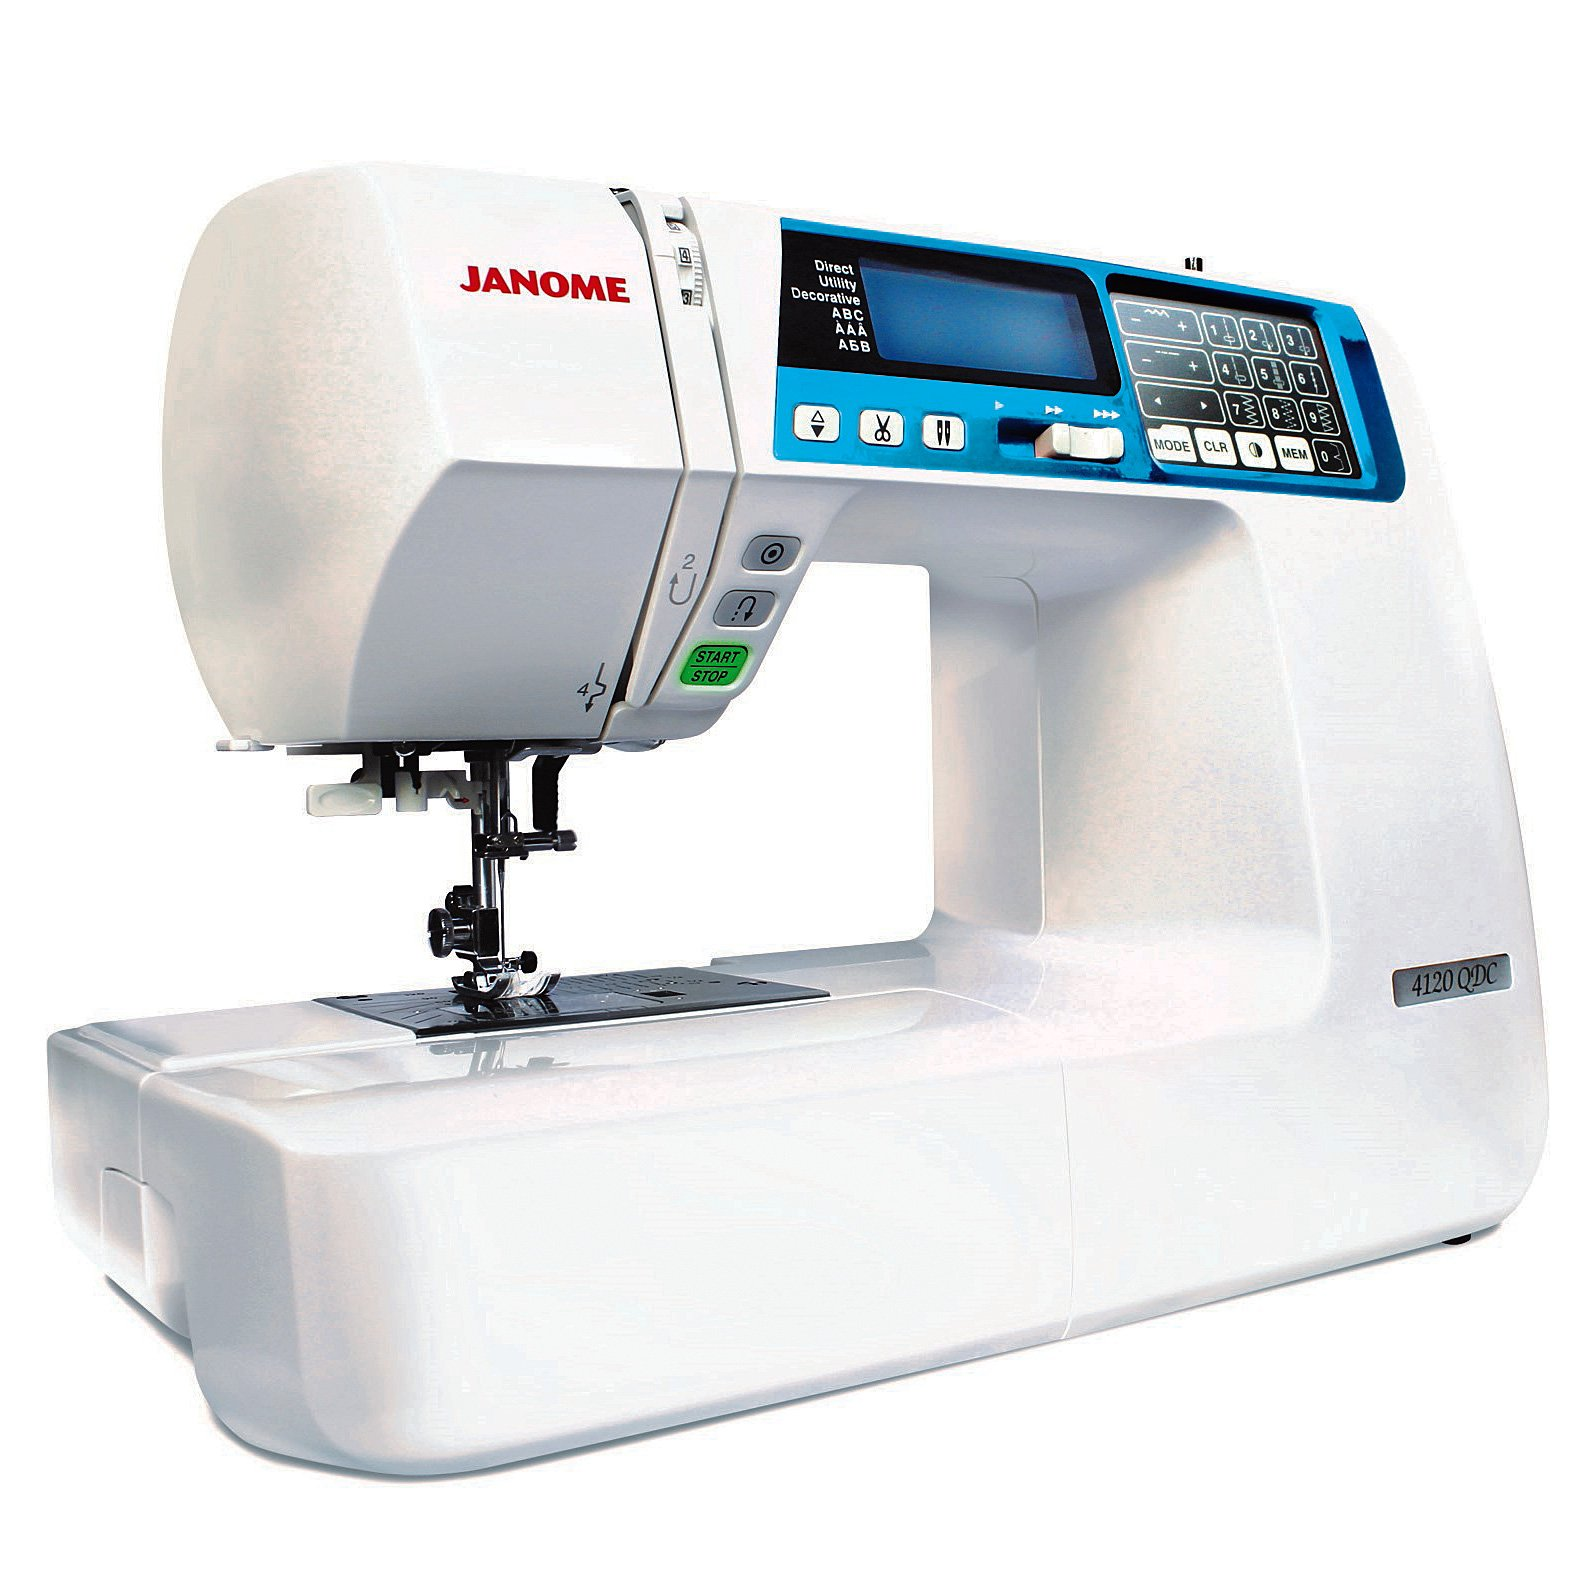 Janome 4120 QDC-B Computerized Sewing and Quilting Machine